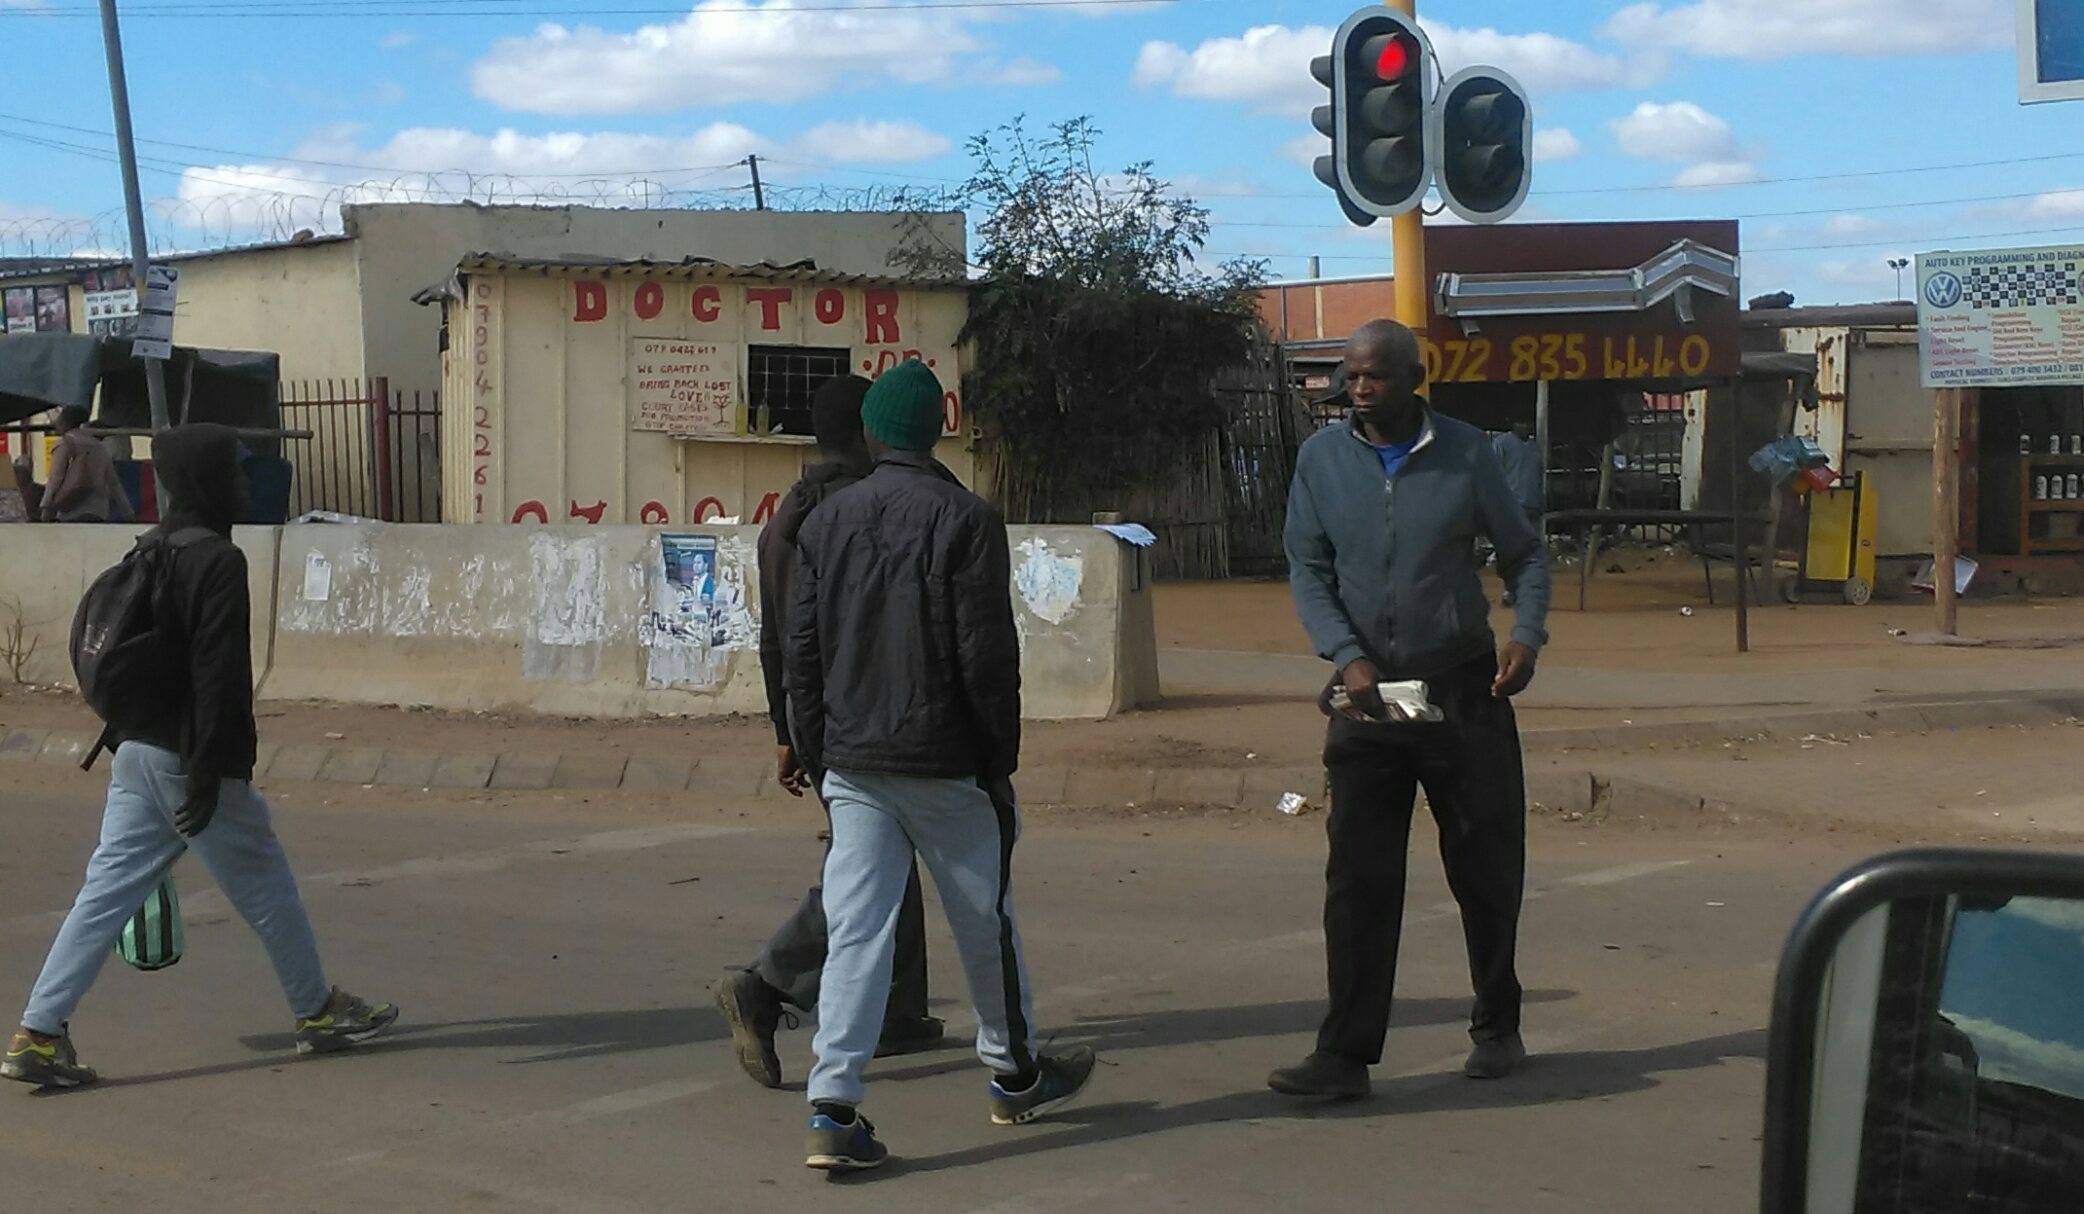 back driving thru parts of Jo'burg, note the sign on the building... thats their doctor clinic